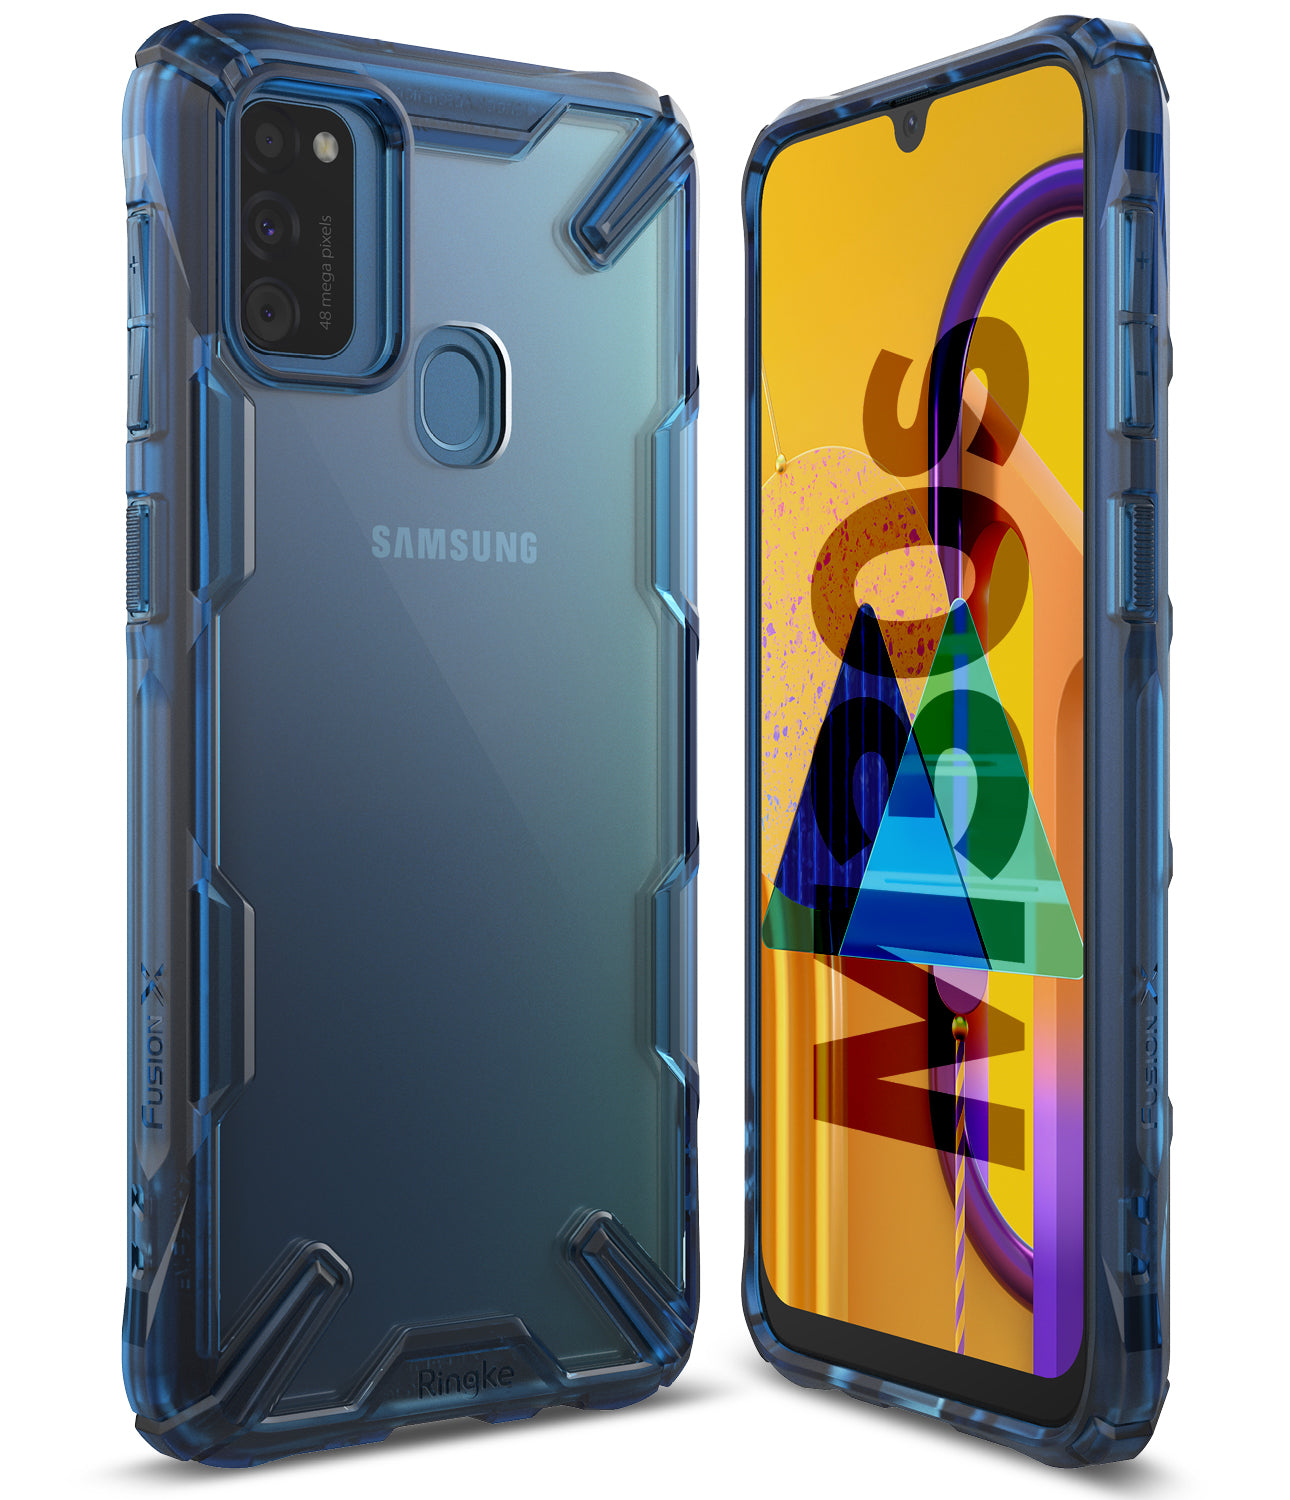 ringke fusion-x case designed for samsung galaxy m30s - space blue